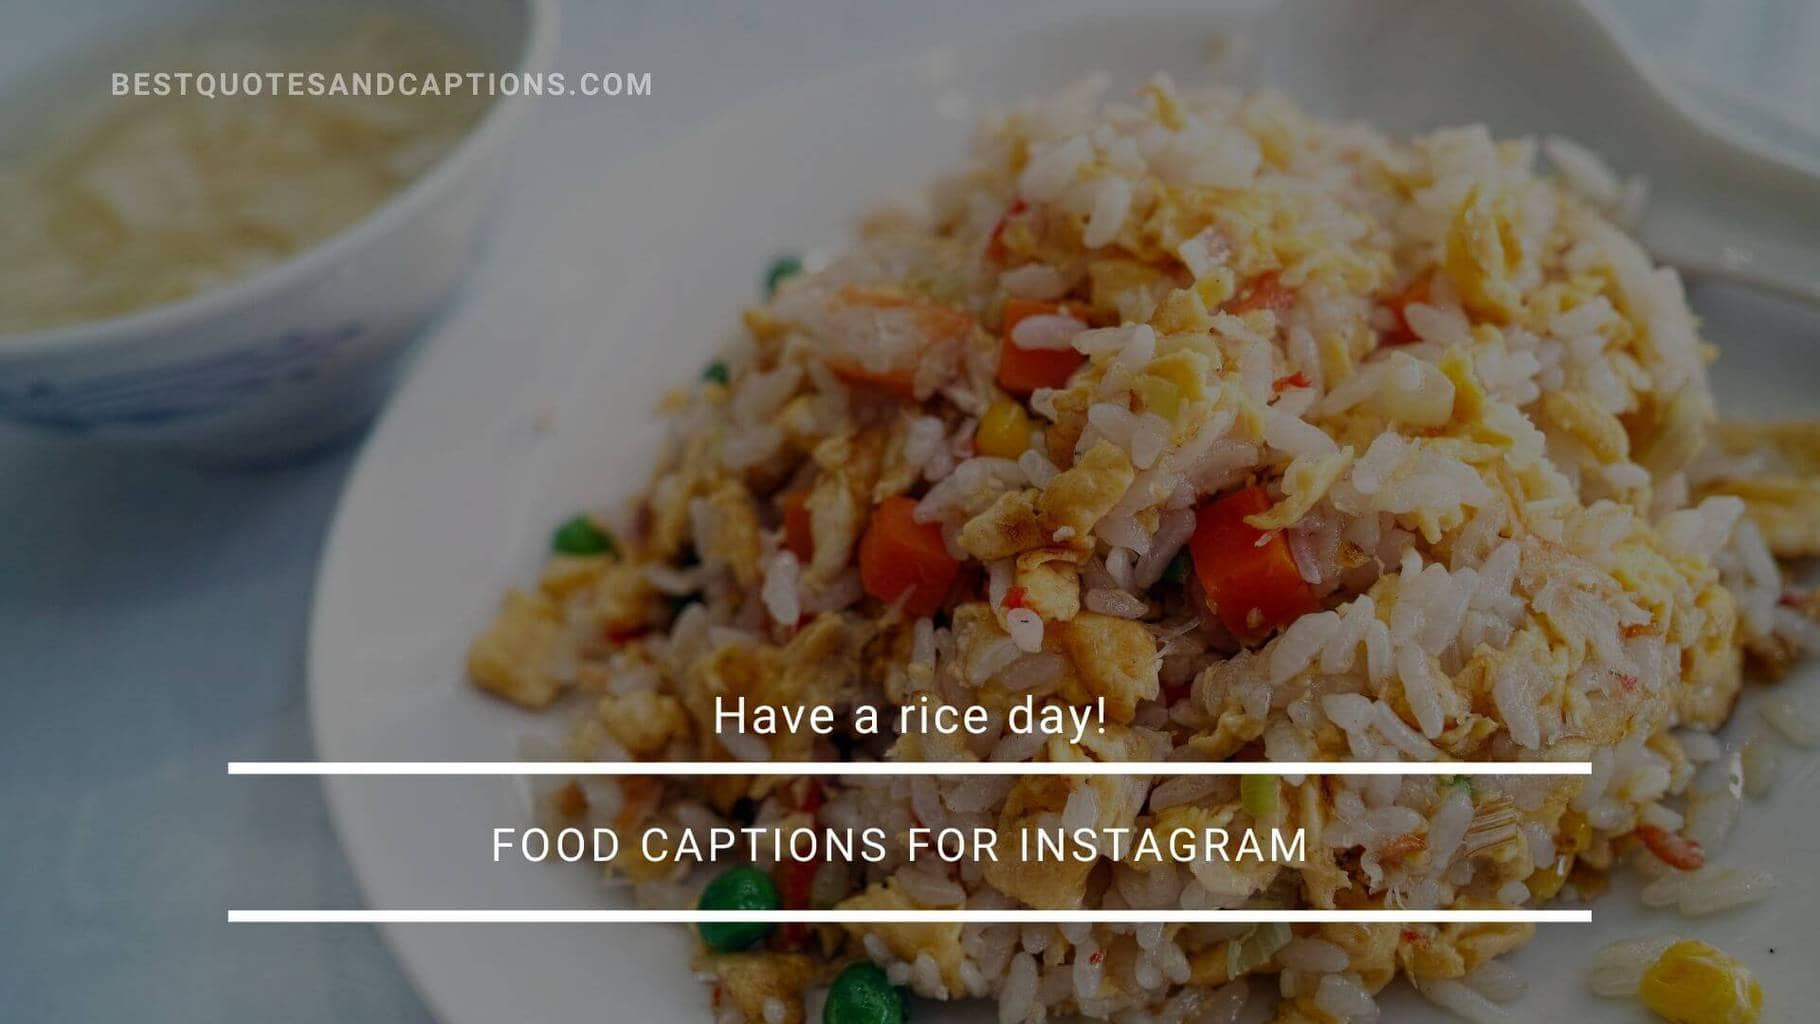 Rice captions for Instagram